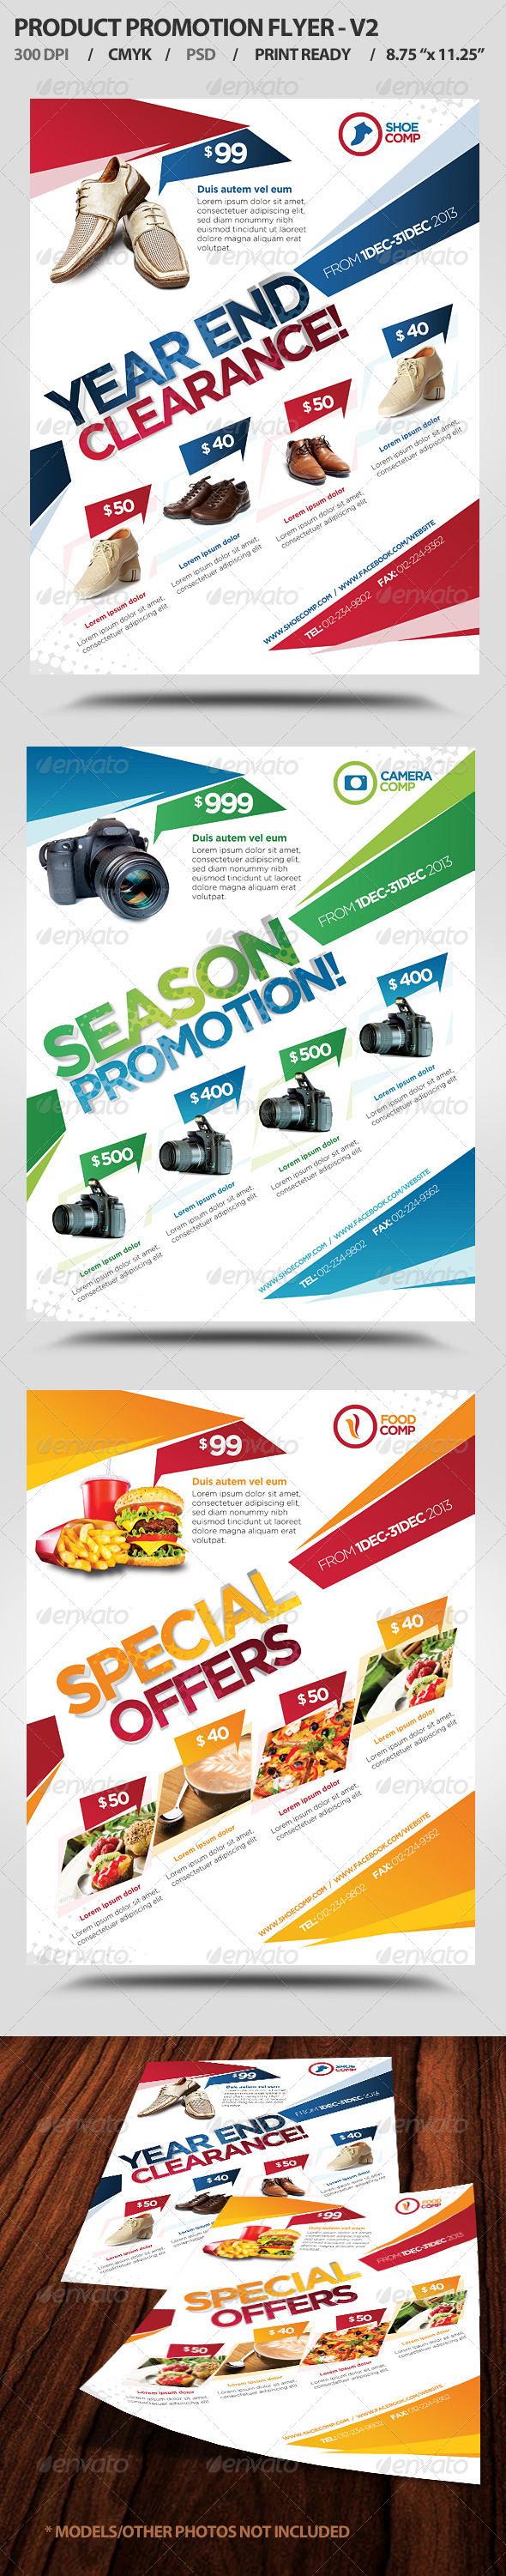 GraphicRiver Product Promotion Flyer V2 4645385